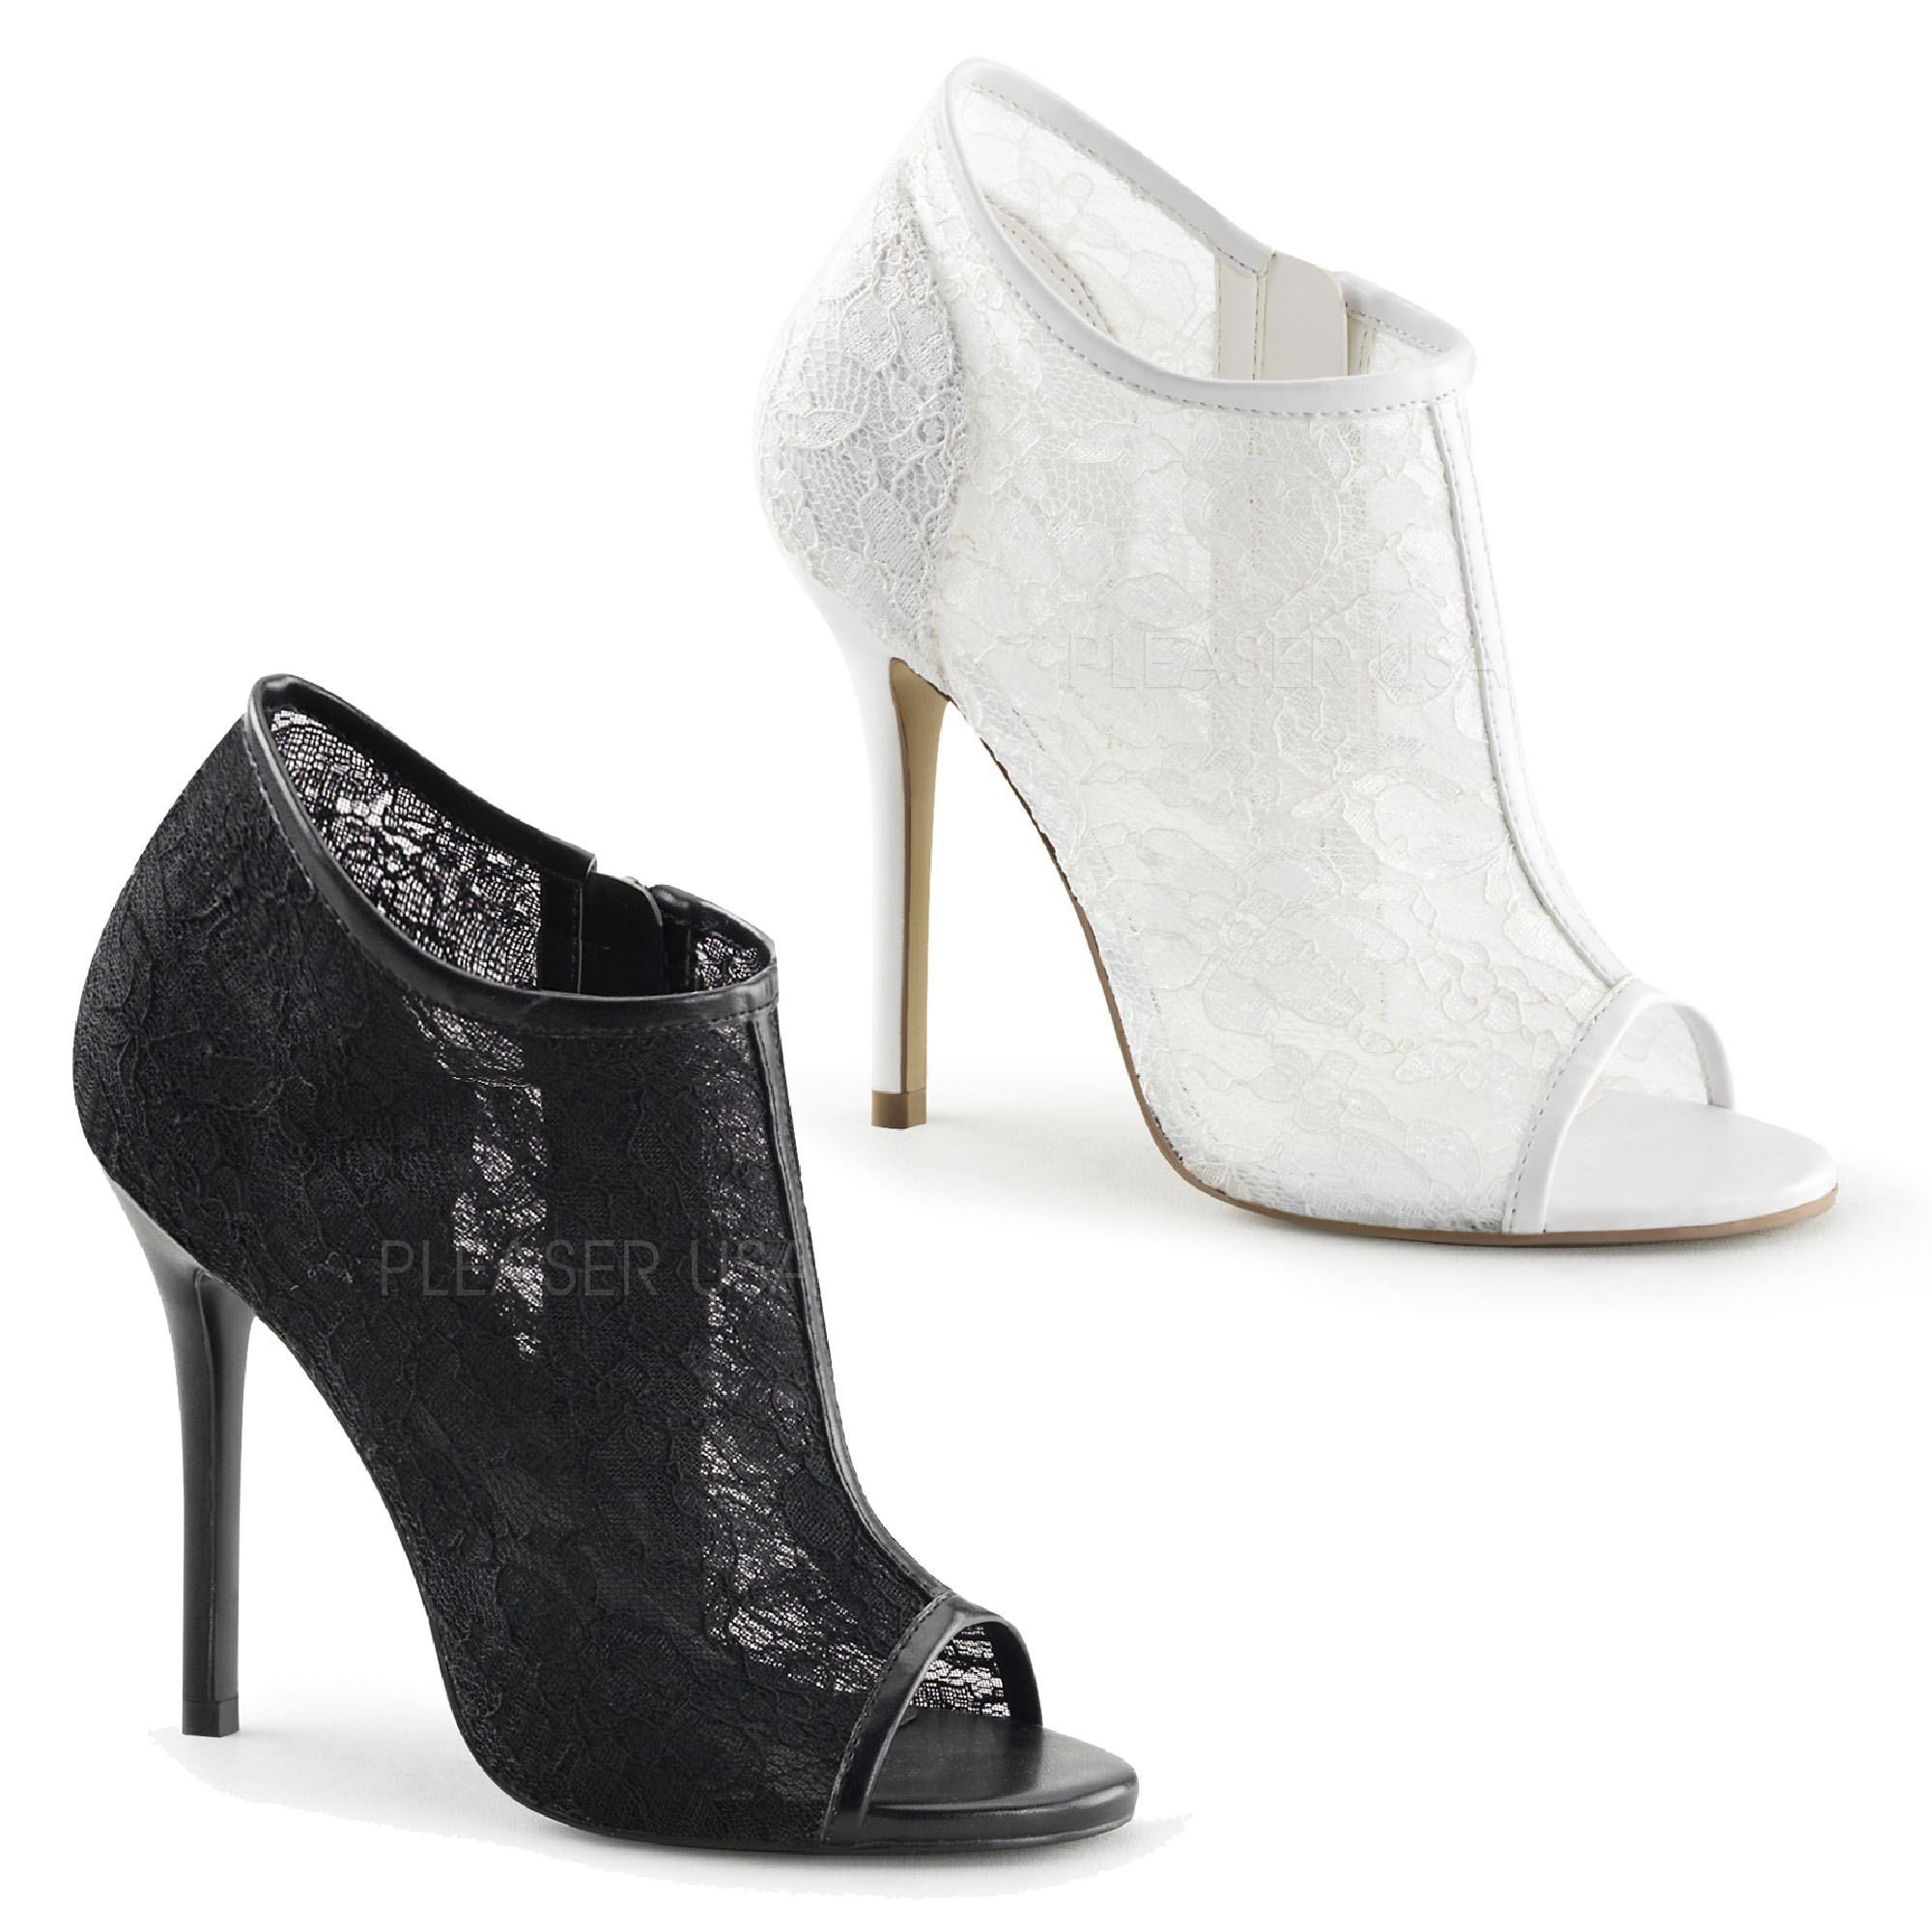 Amuse-56 Open Toe Bootie With Lace Overlay Patent Trim FABULICIOUS By Pleaser